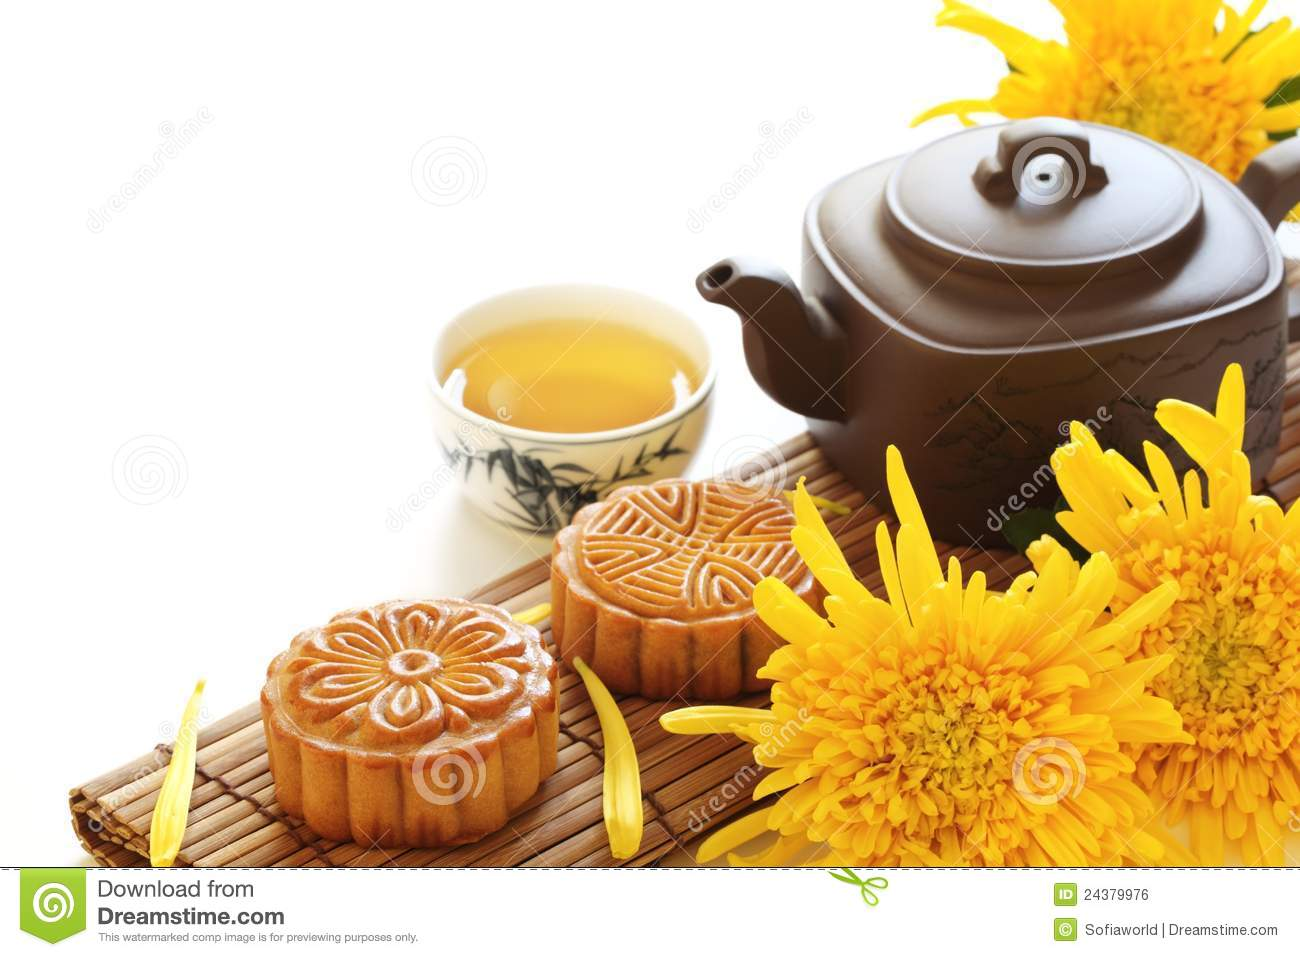 Moon Cake Clip Art : Mooncake And Tea Royalty Free Stock Image - Image: 24379976